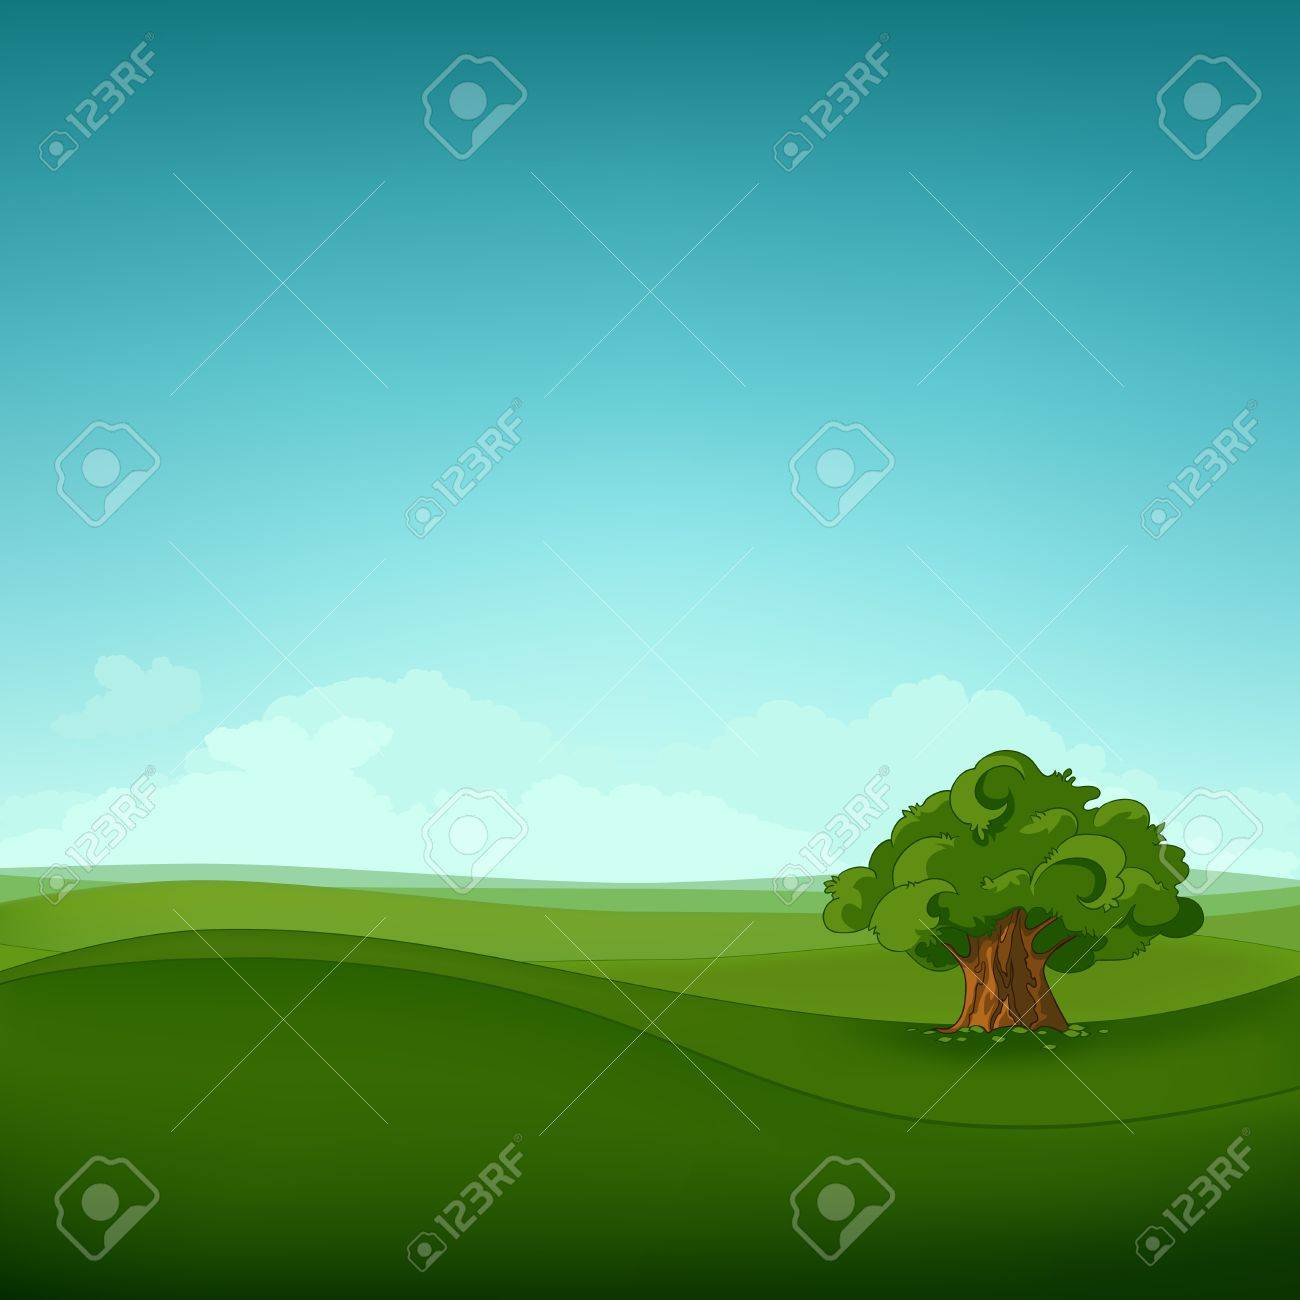 Field Landscape Stock Vector - 12137163